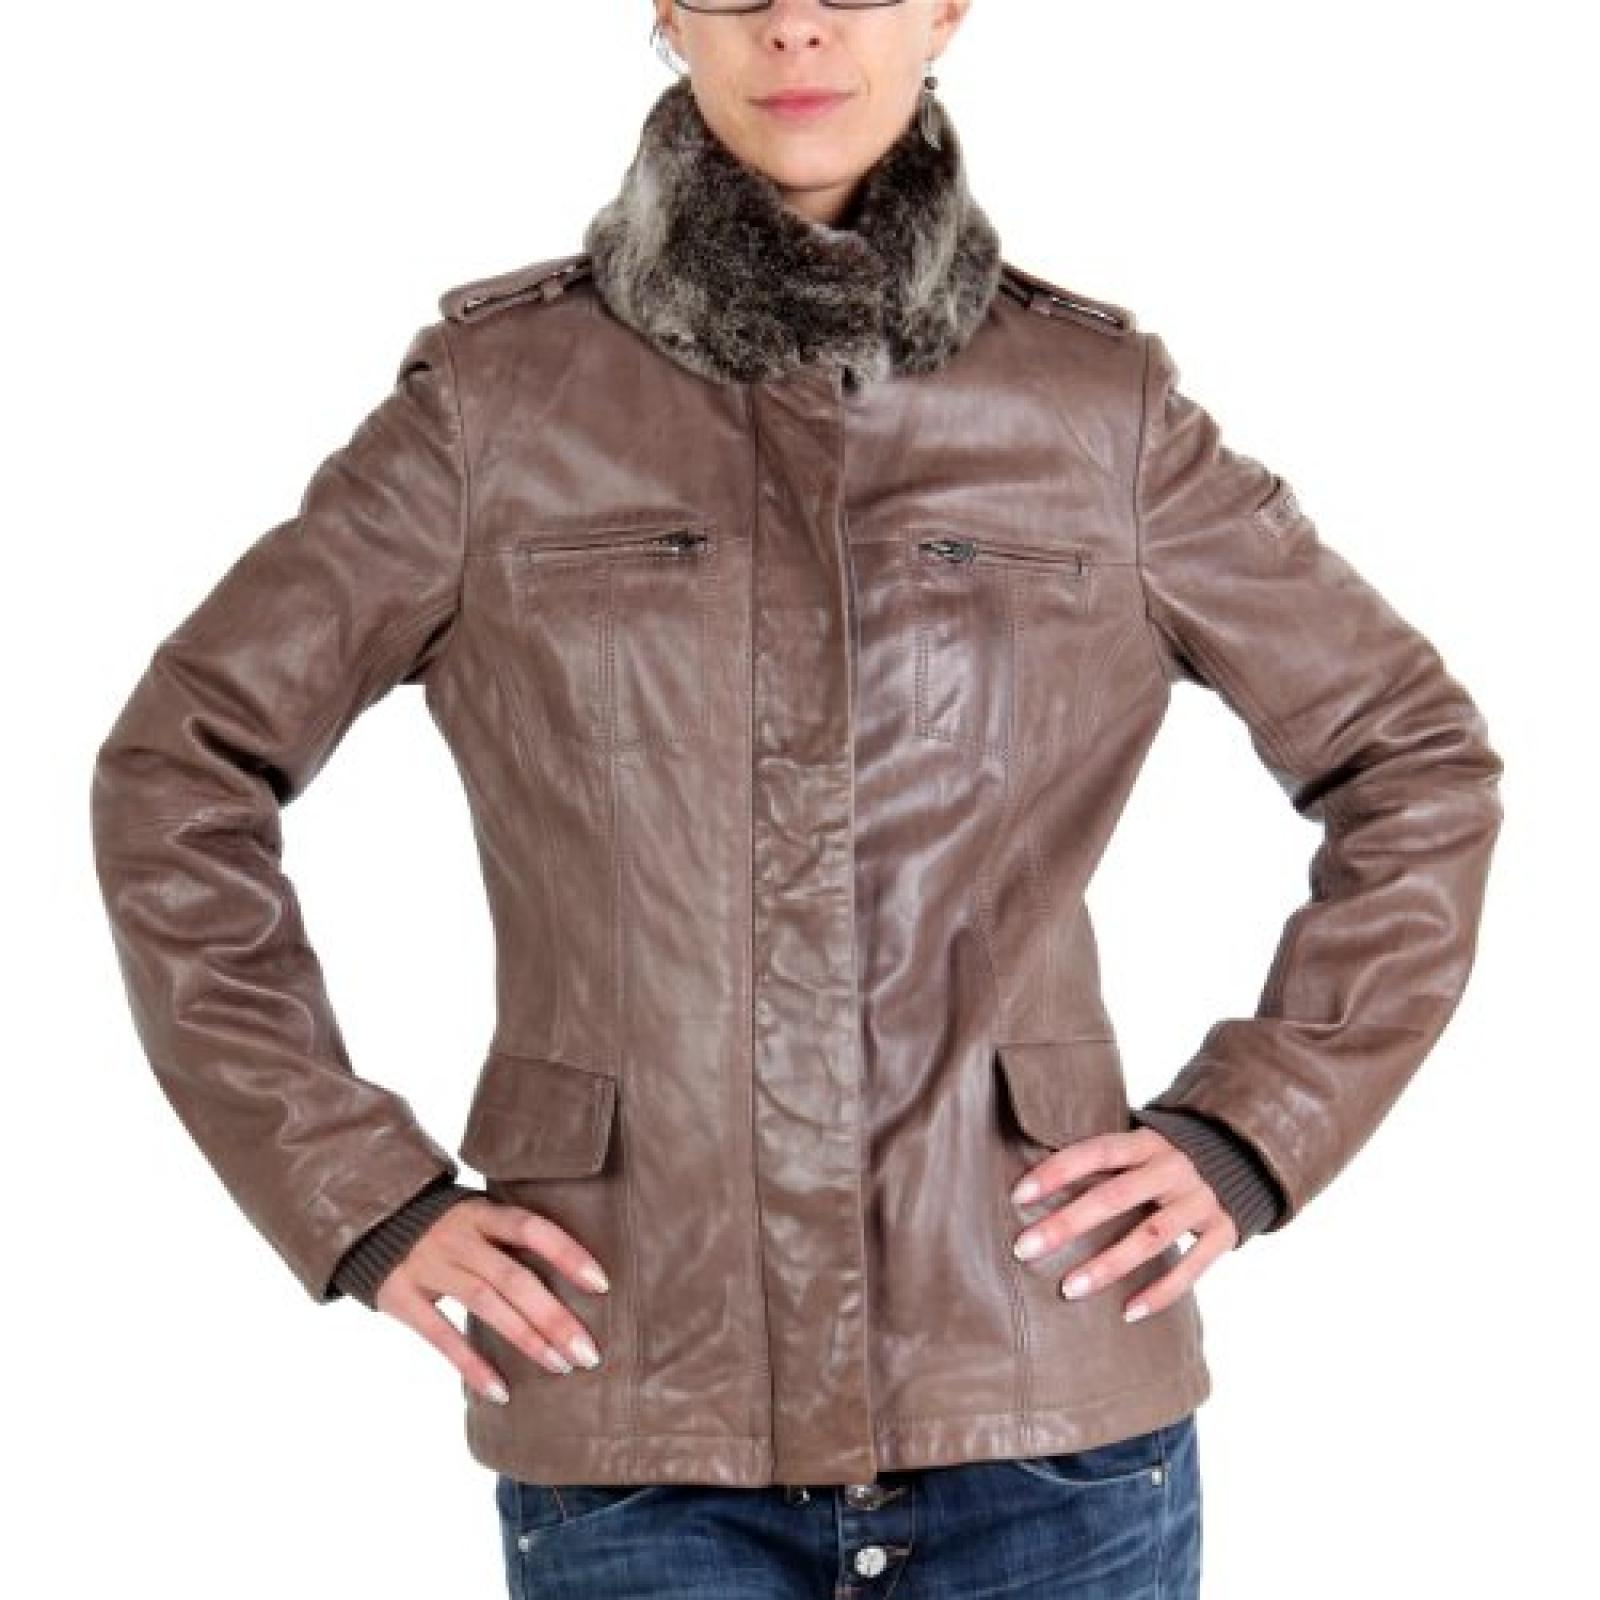 PEUTEREY Damen Winter Lederjacke Cindy Brown 2. Wahl